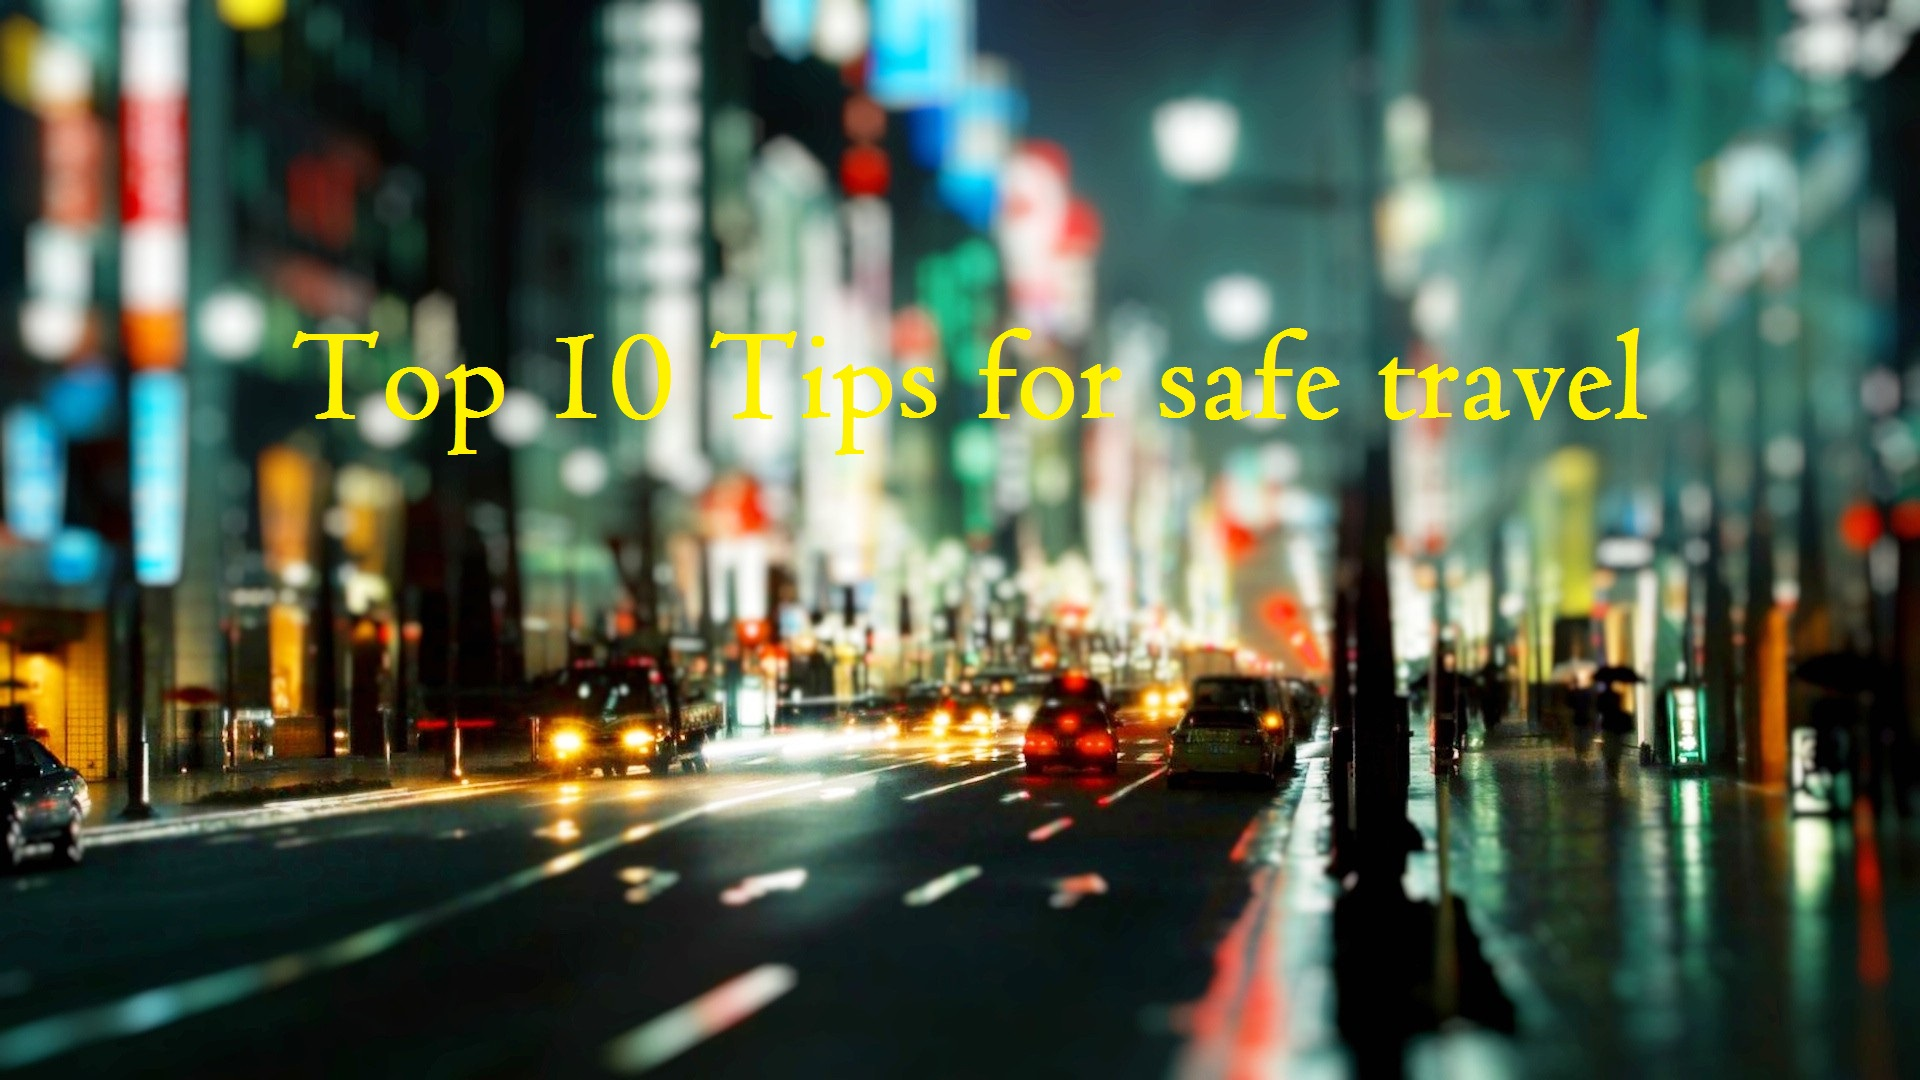 Top 10 Tips to Stay Safe When You Travel